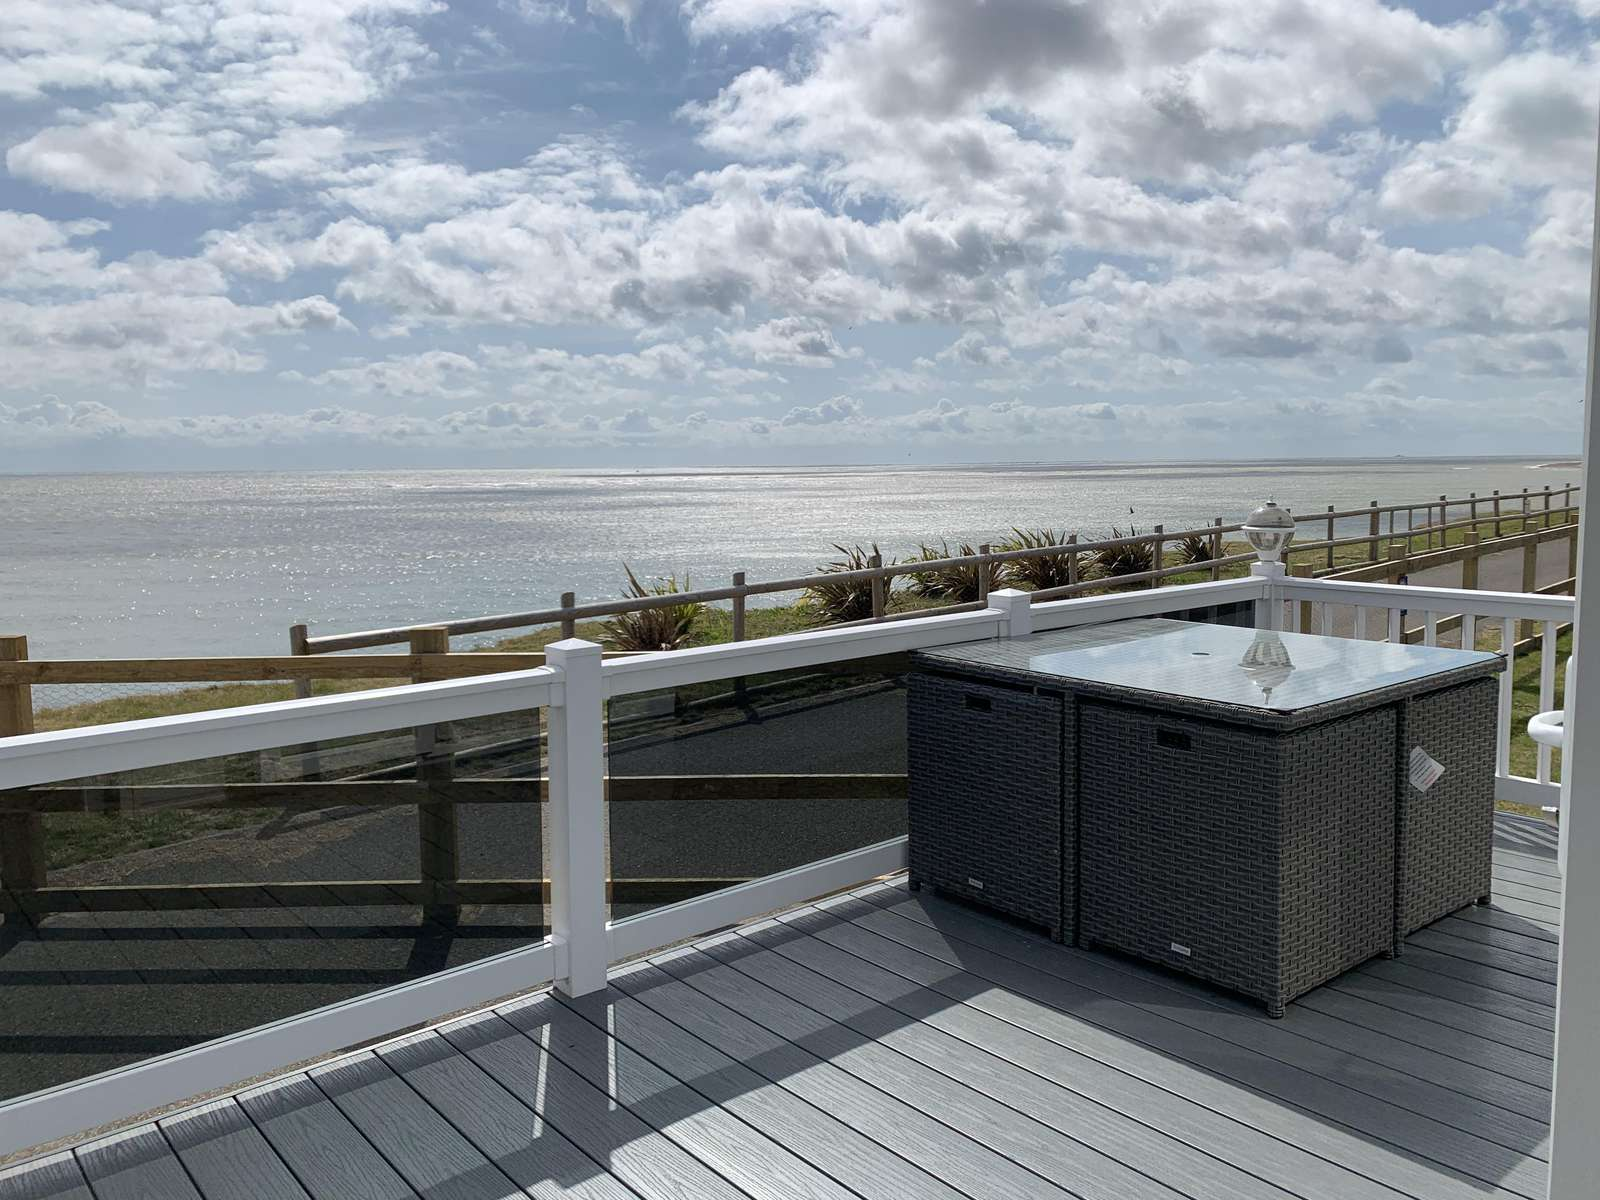 68026CV – CVS area, 2 bed, 6 berth lodge with full sea views and decking. Platinum rated. - property